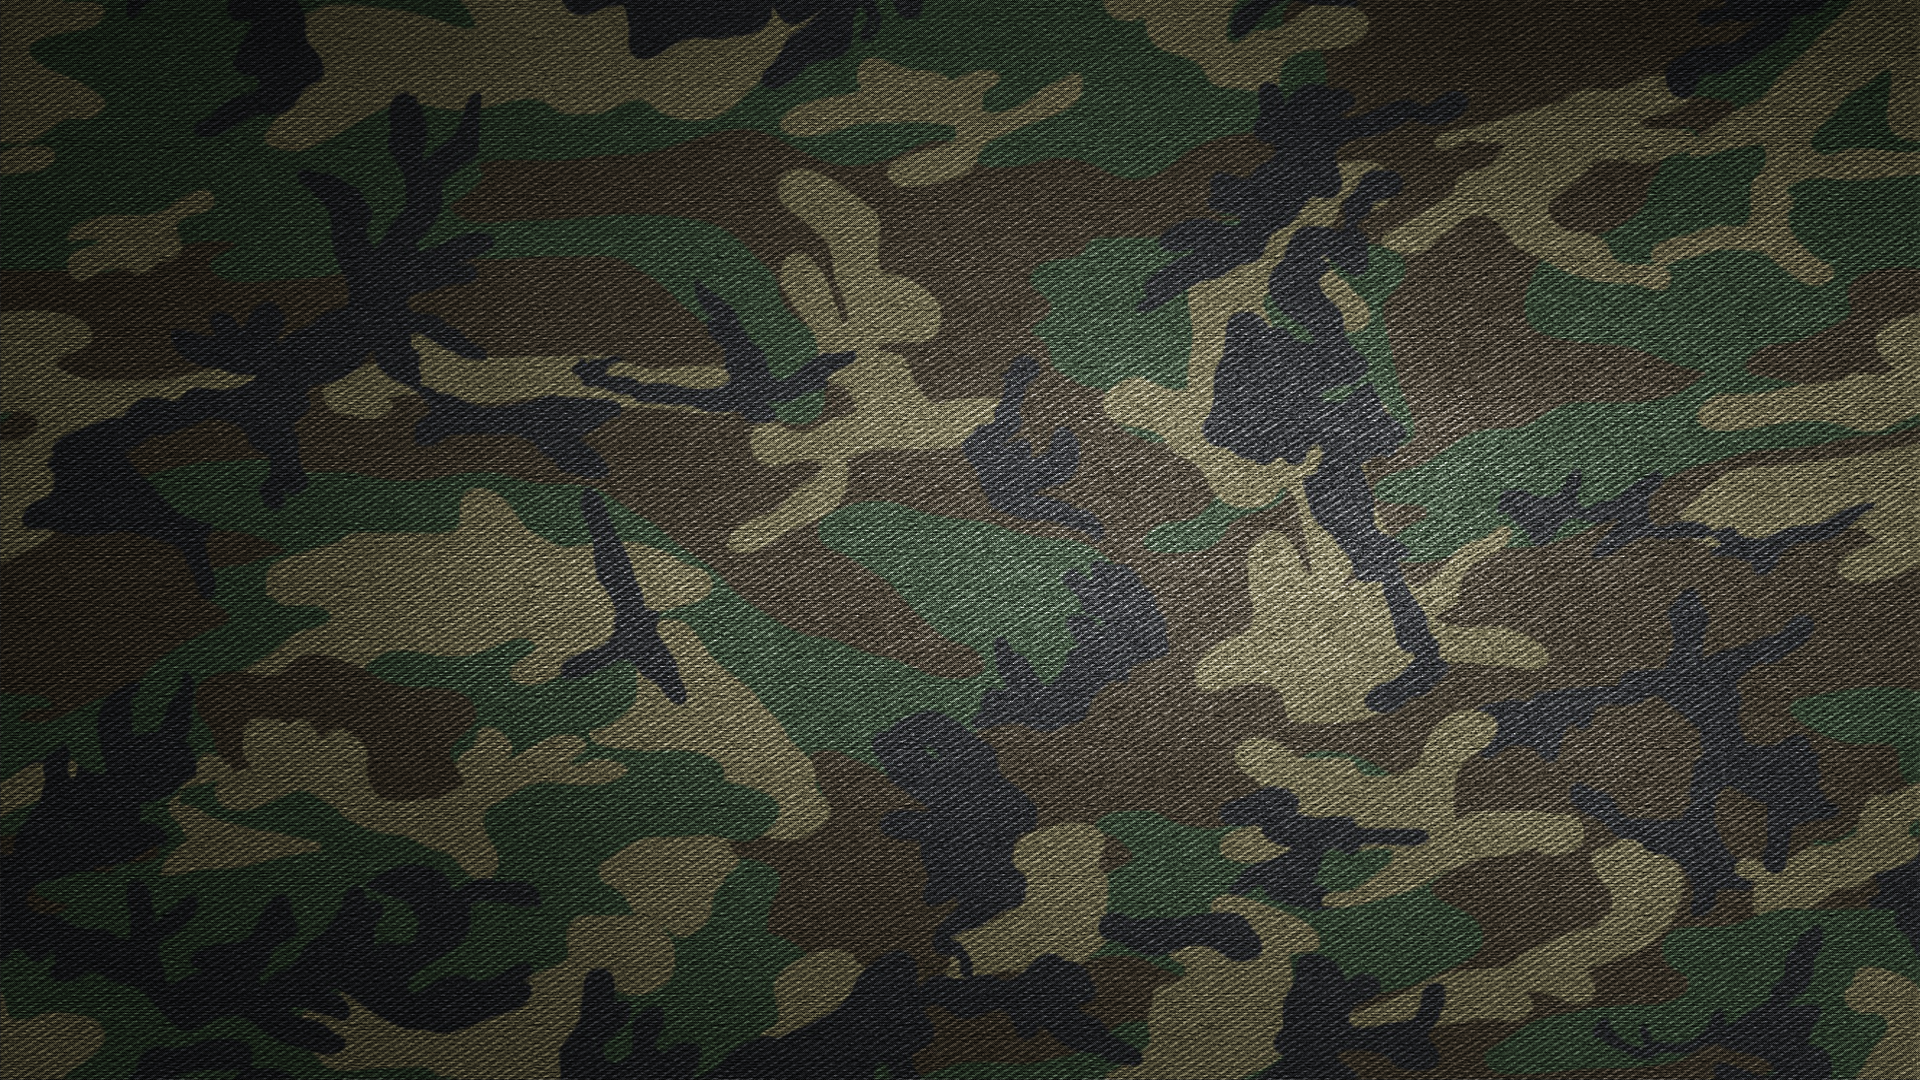 Military Camo Wallpaper   HD Wallpapers 1920x1080